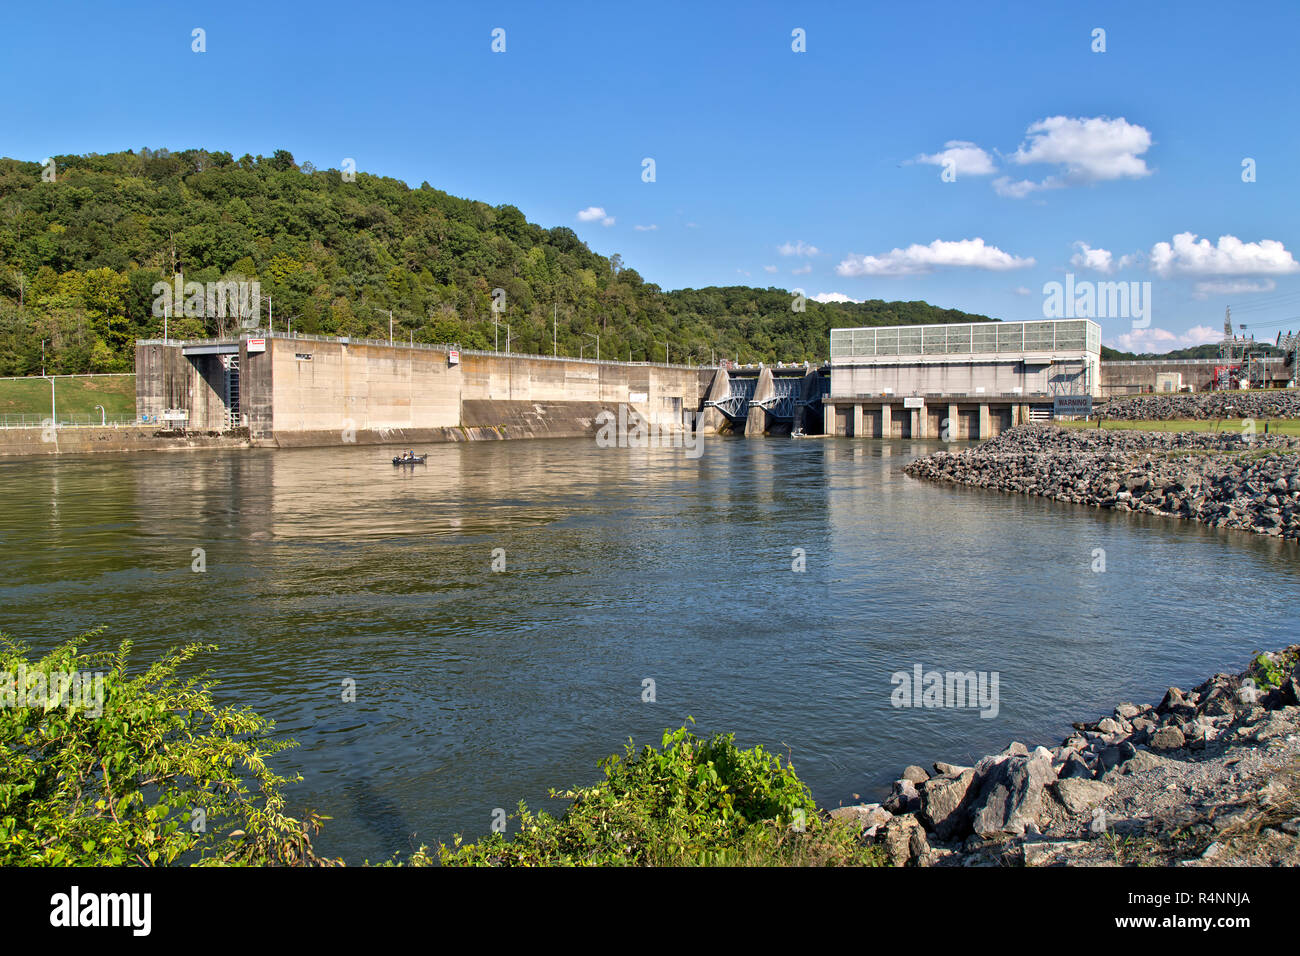 Melton Hill Hydroelectric Dam & Power Station. Melton Hill Recreation Area,  U.S. Army Corps Of Engineers. Stock Photo